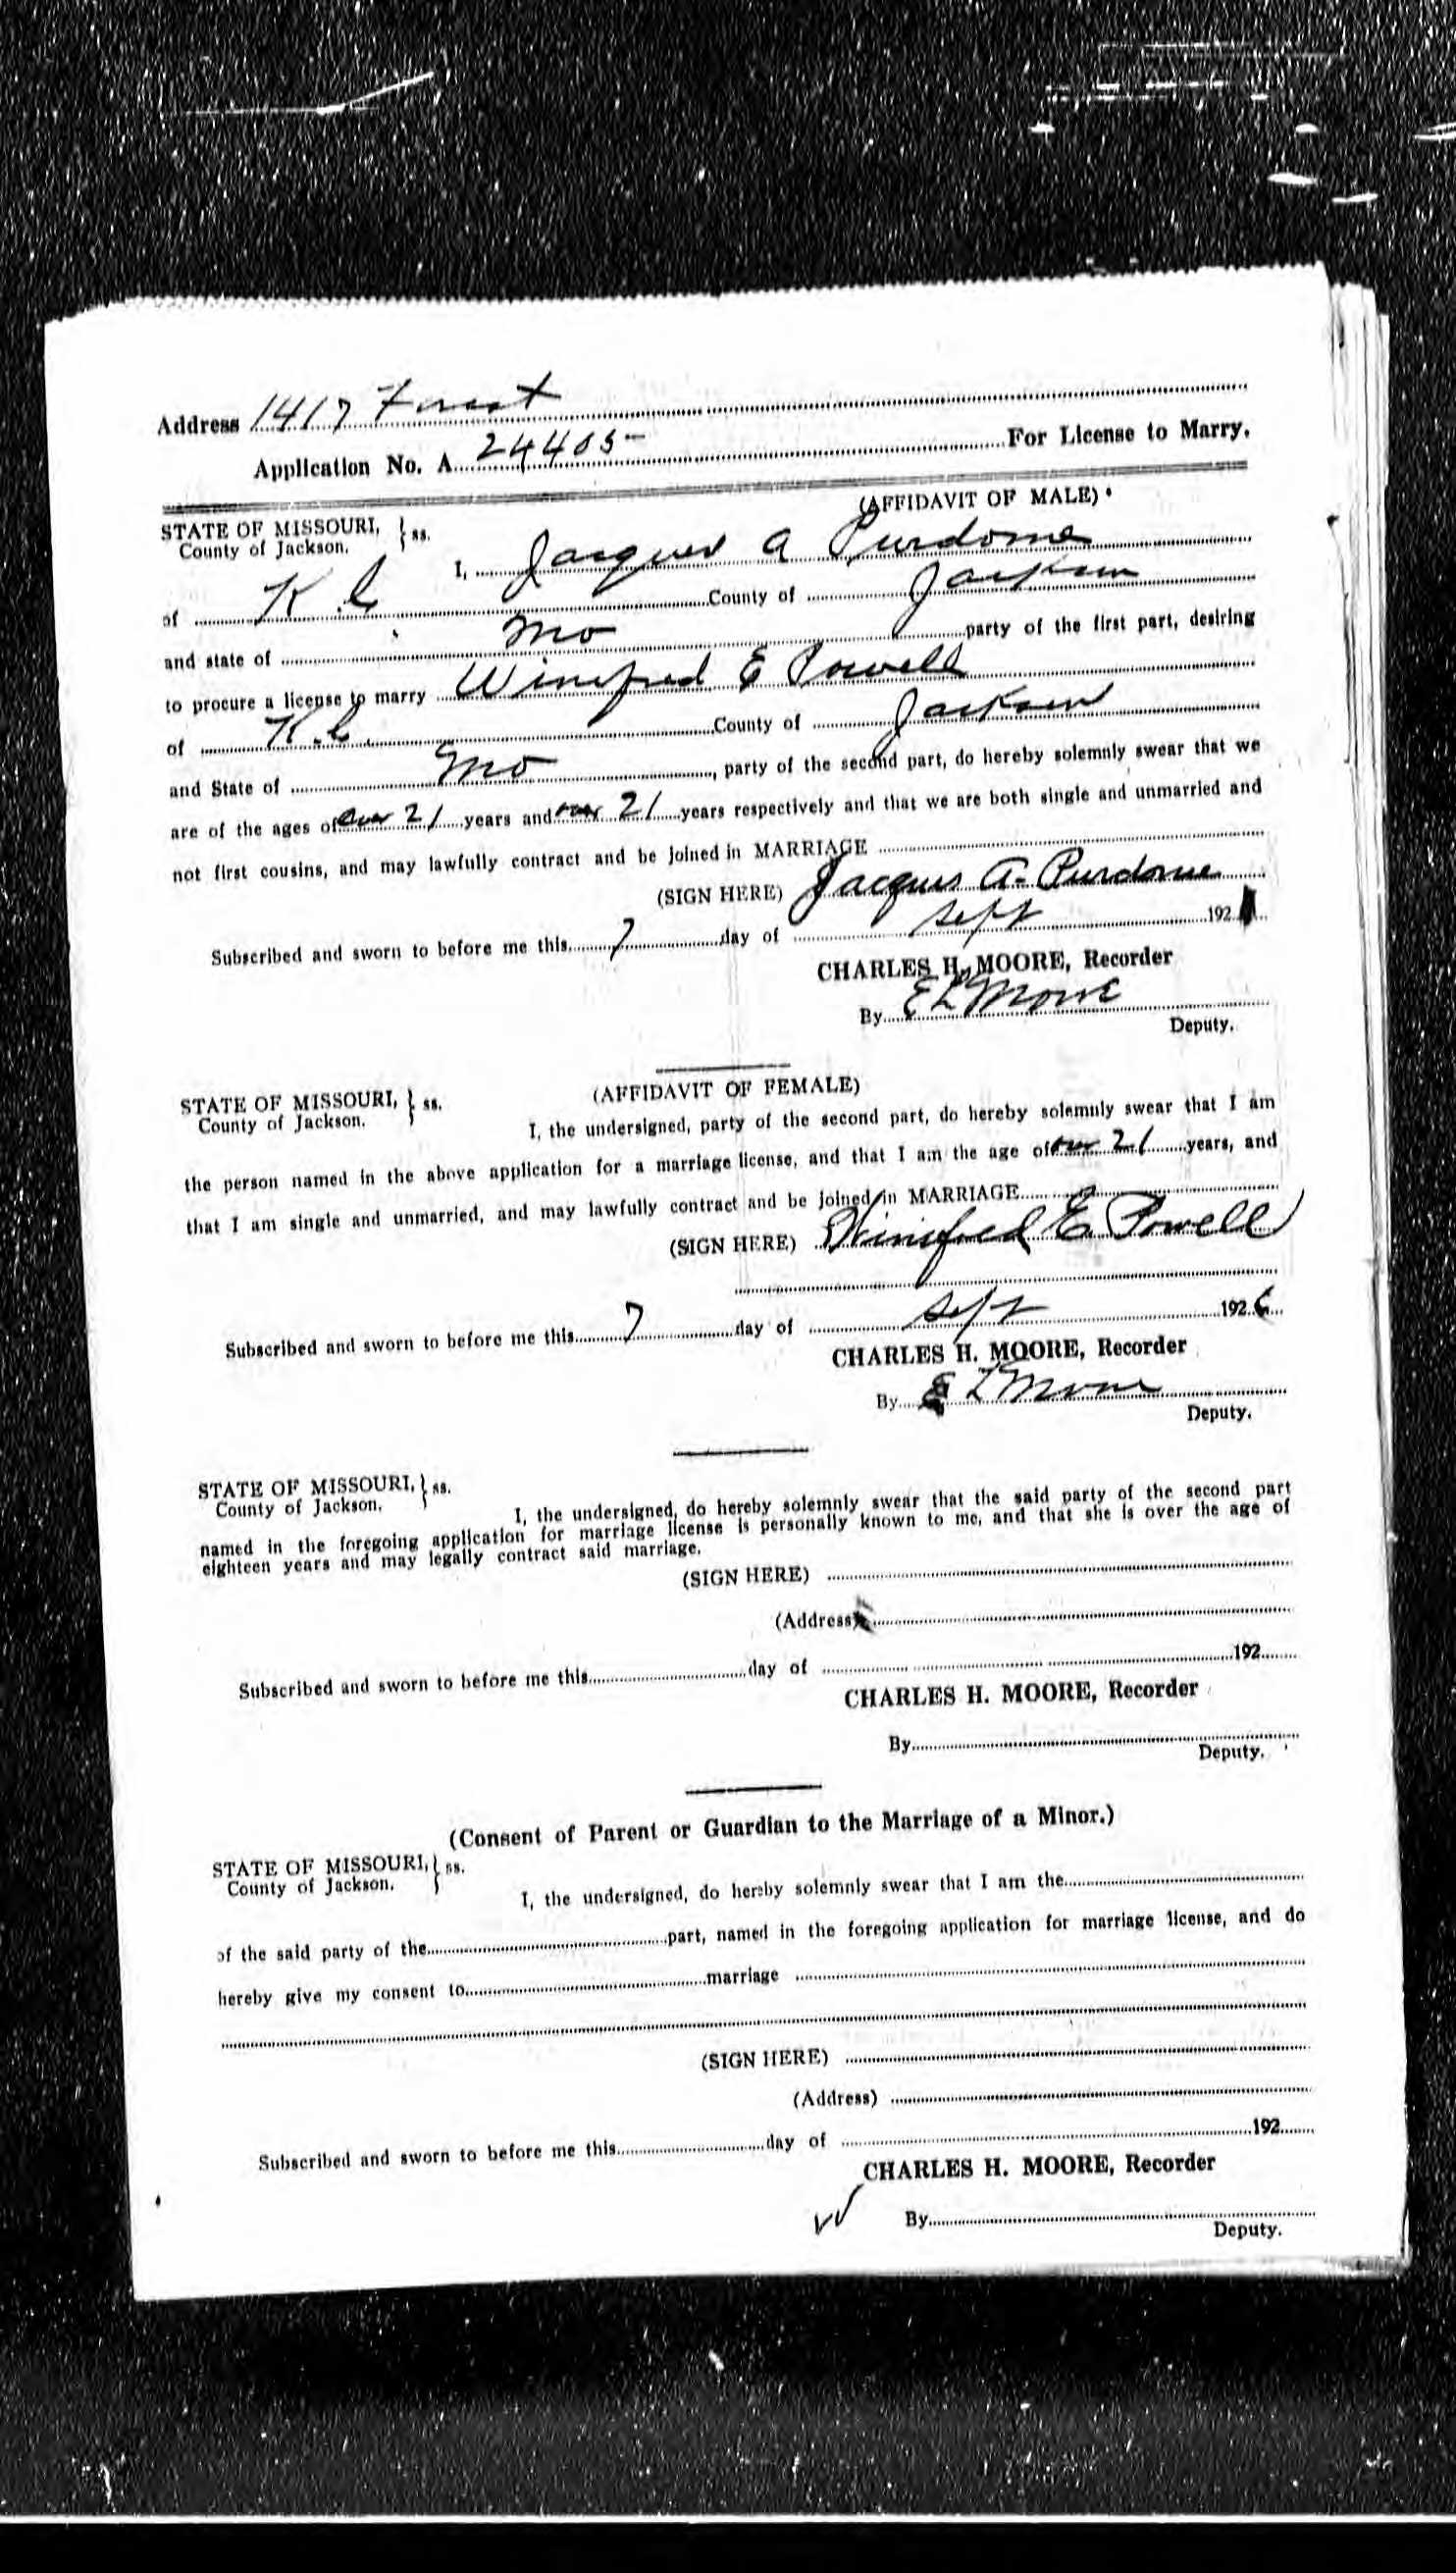 Jacques athel james purdom purdome 1898 1961 find a grave memorial the application for a marriage license filed by jacques purdome and winifred powell on september 7 1926 in kansas city jackson county missouri aiddatafo Choice Image